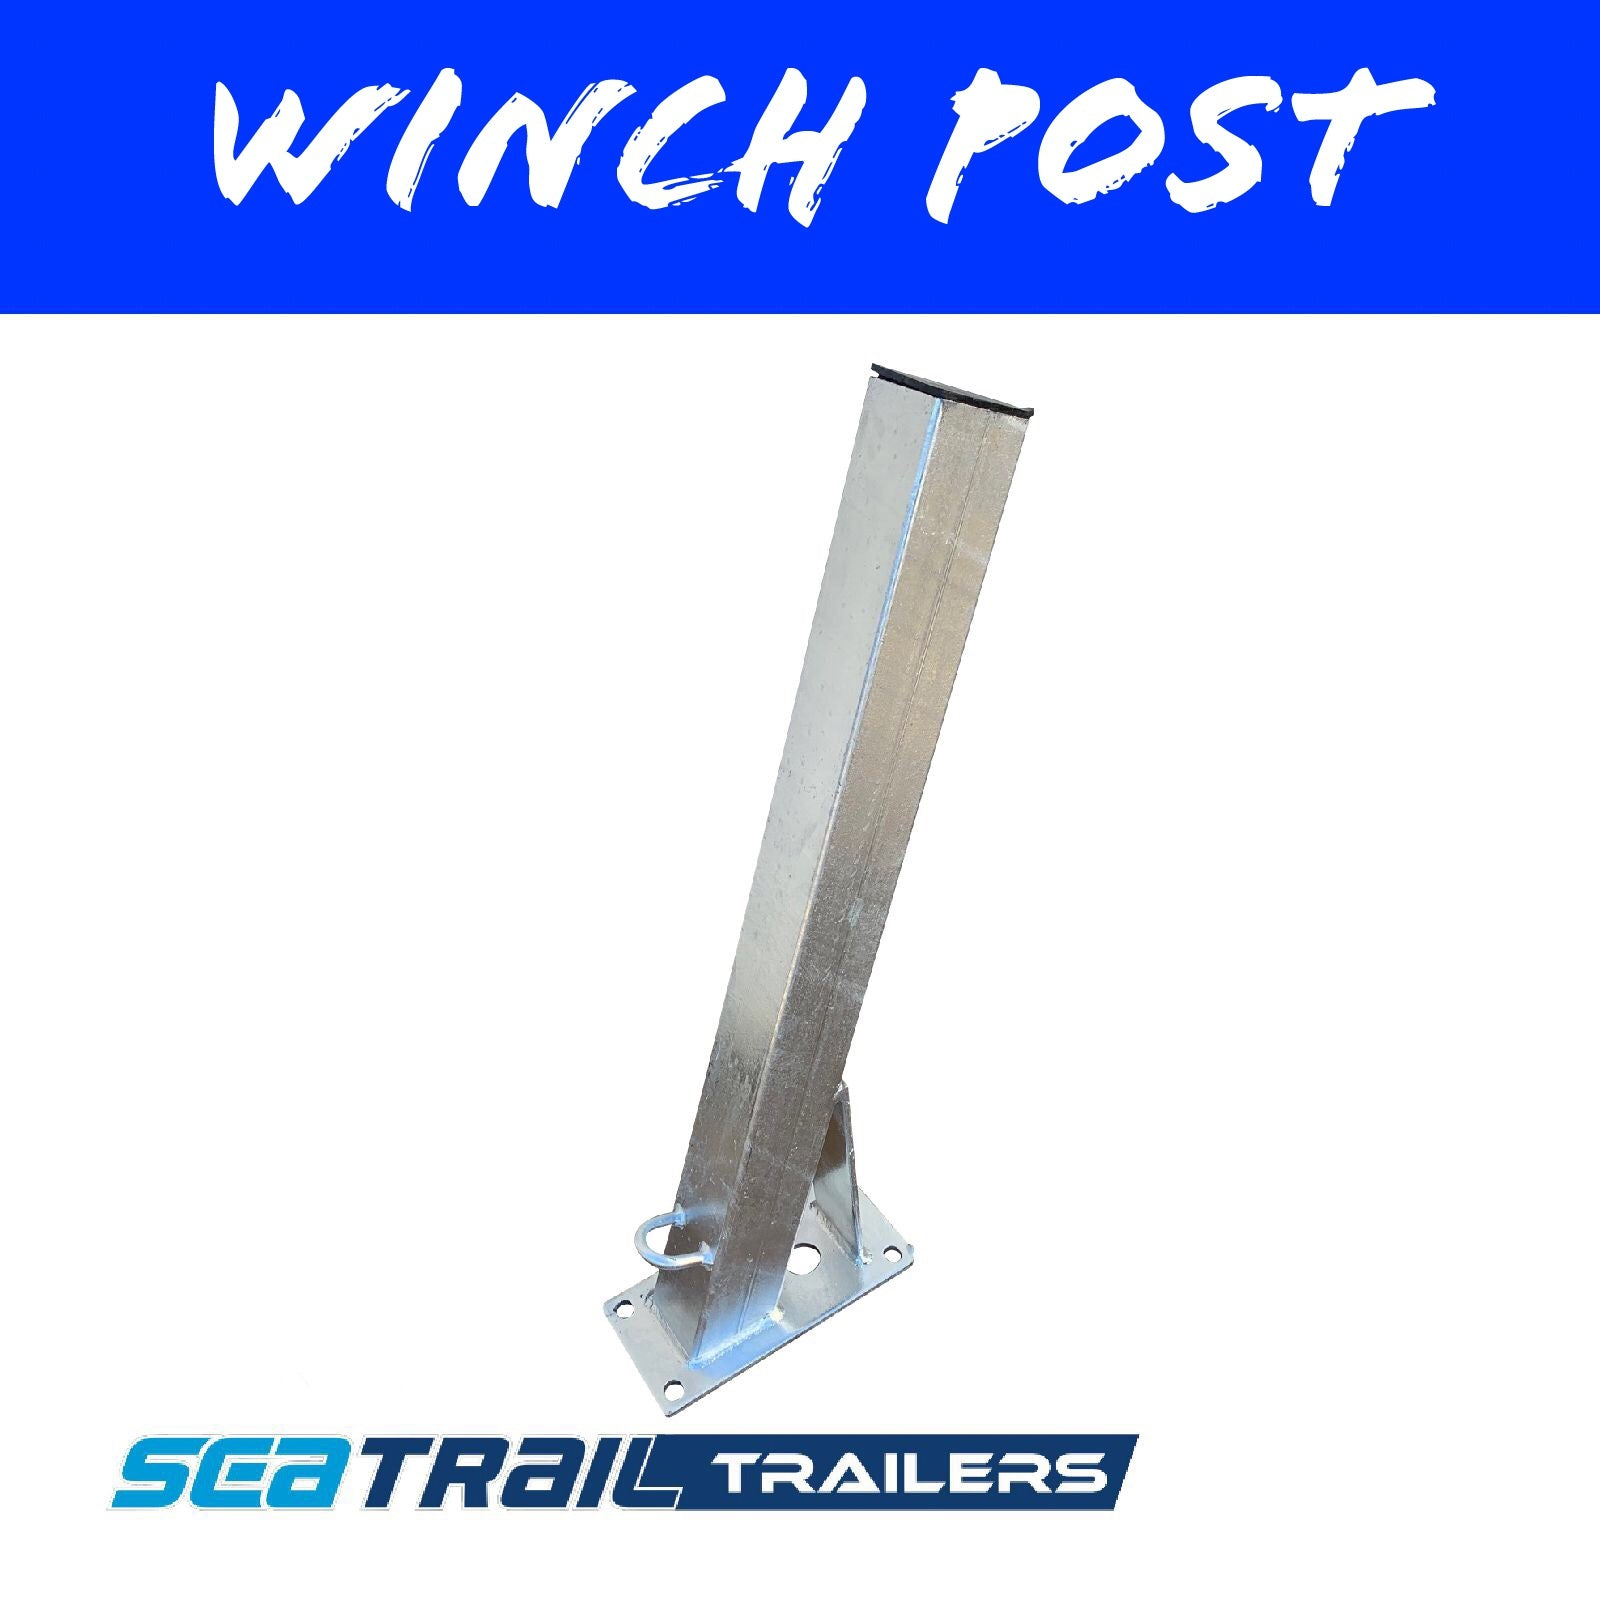 75x75mm WINCH POST